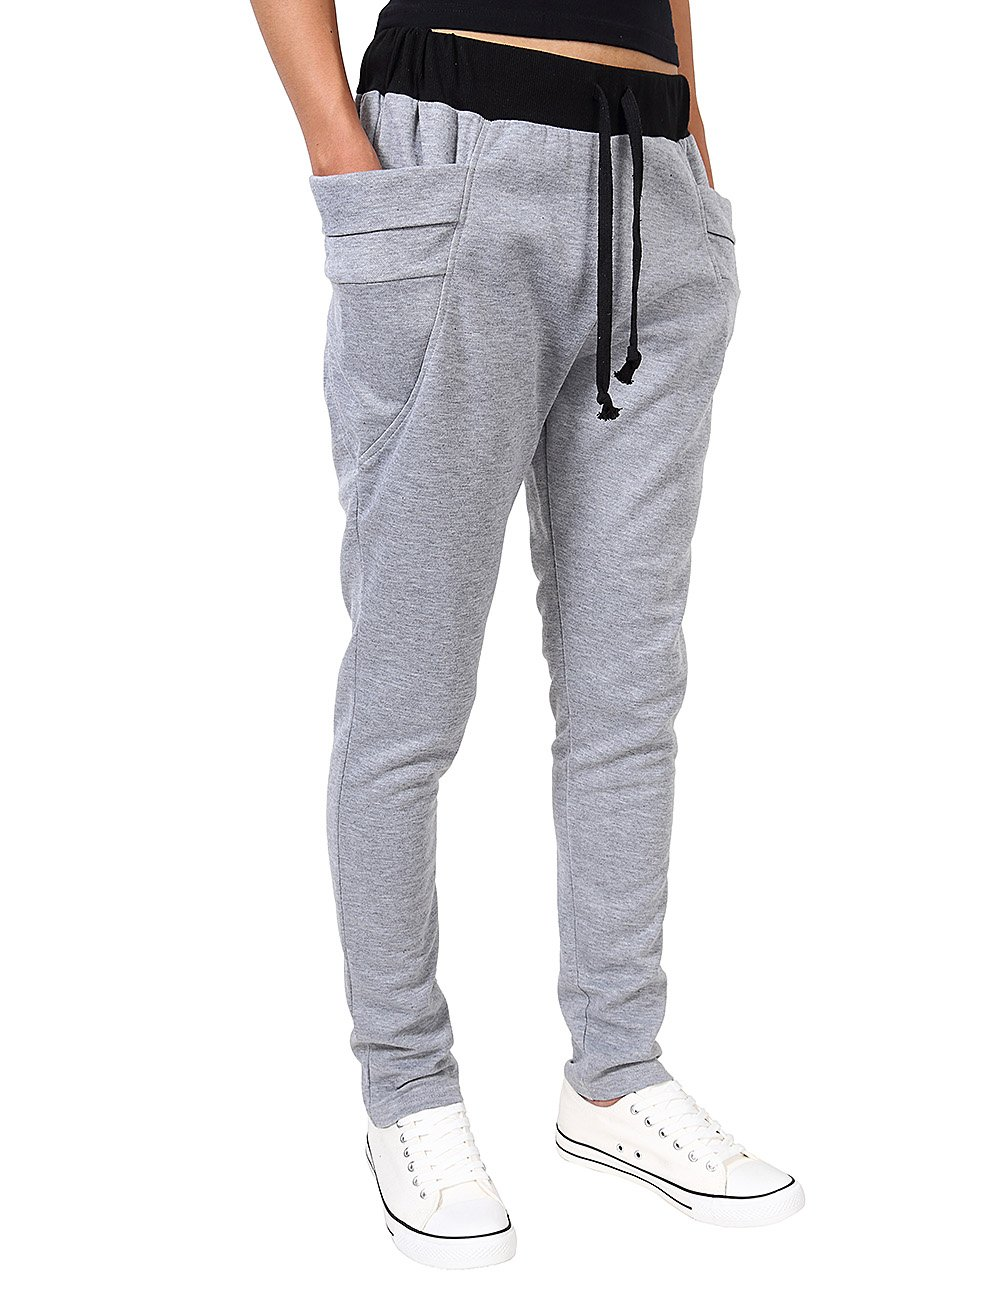 Yiwa Mens Elastic Waist Casual Pants with Side Pockets Light Gray S